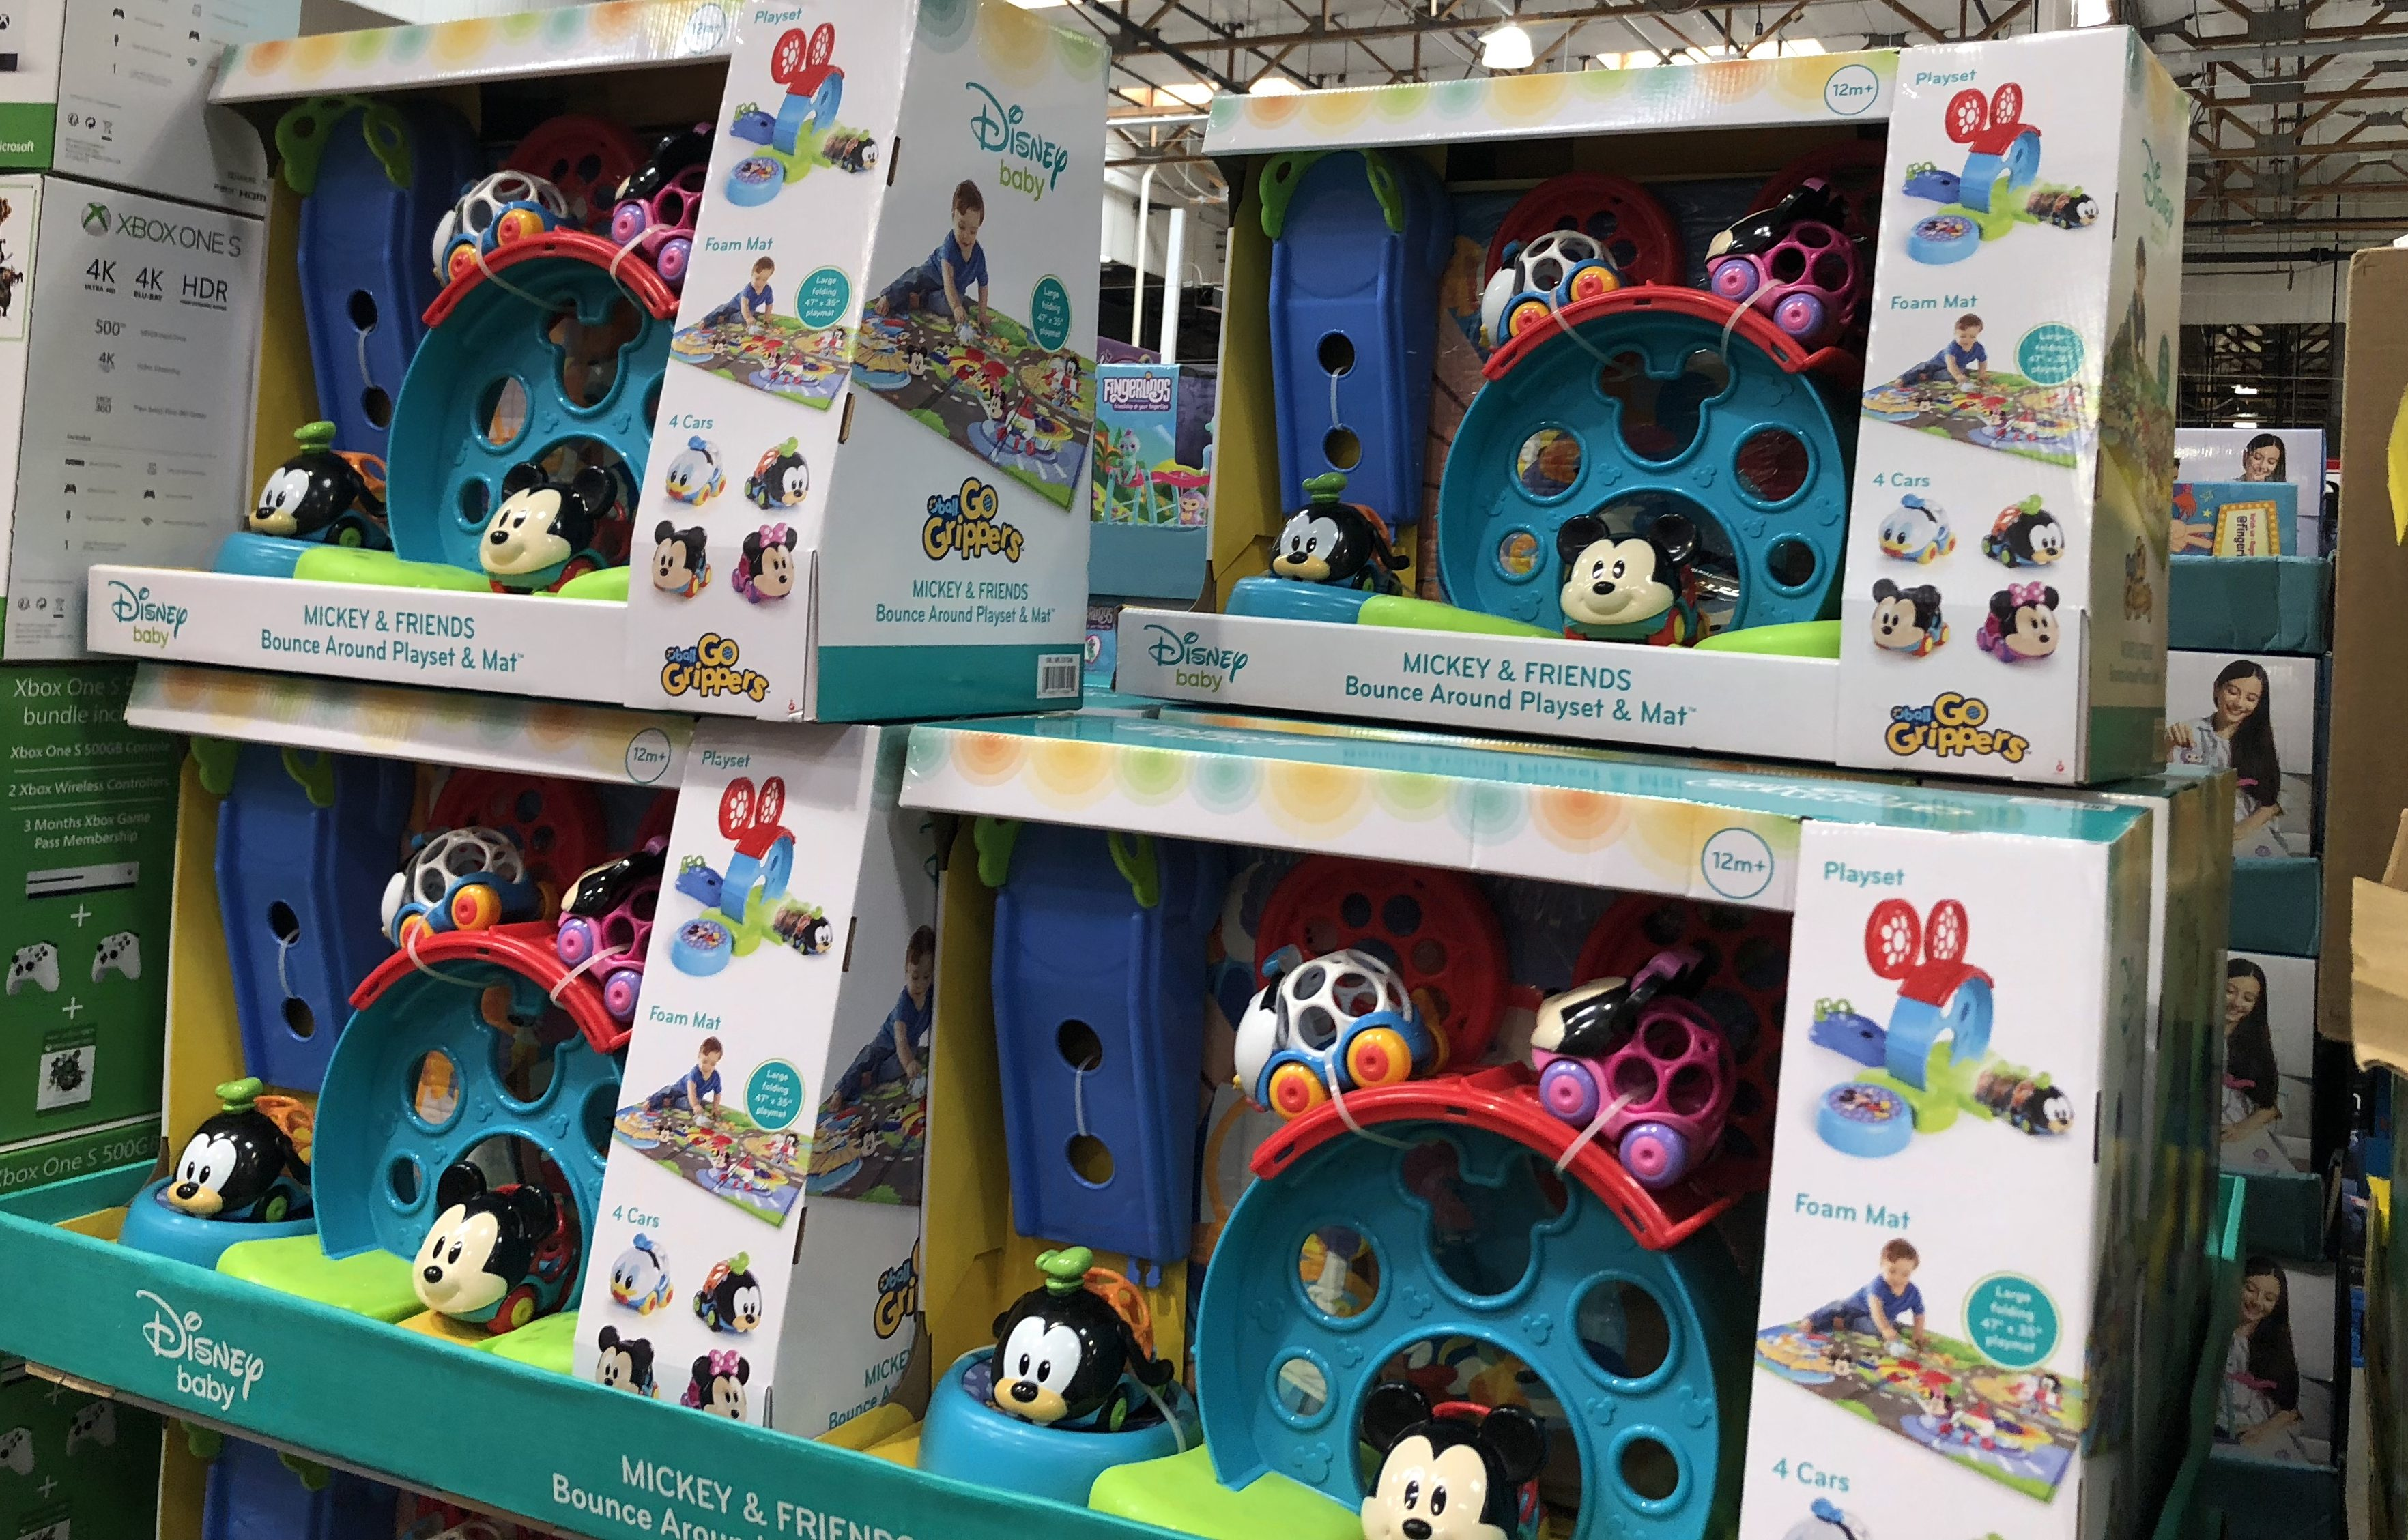 The best holiday toy deals for 2018 include the Disney Baby Playset and Mat at Costco